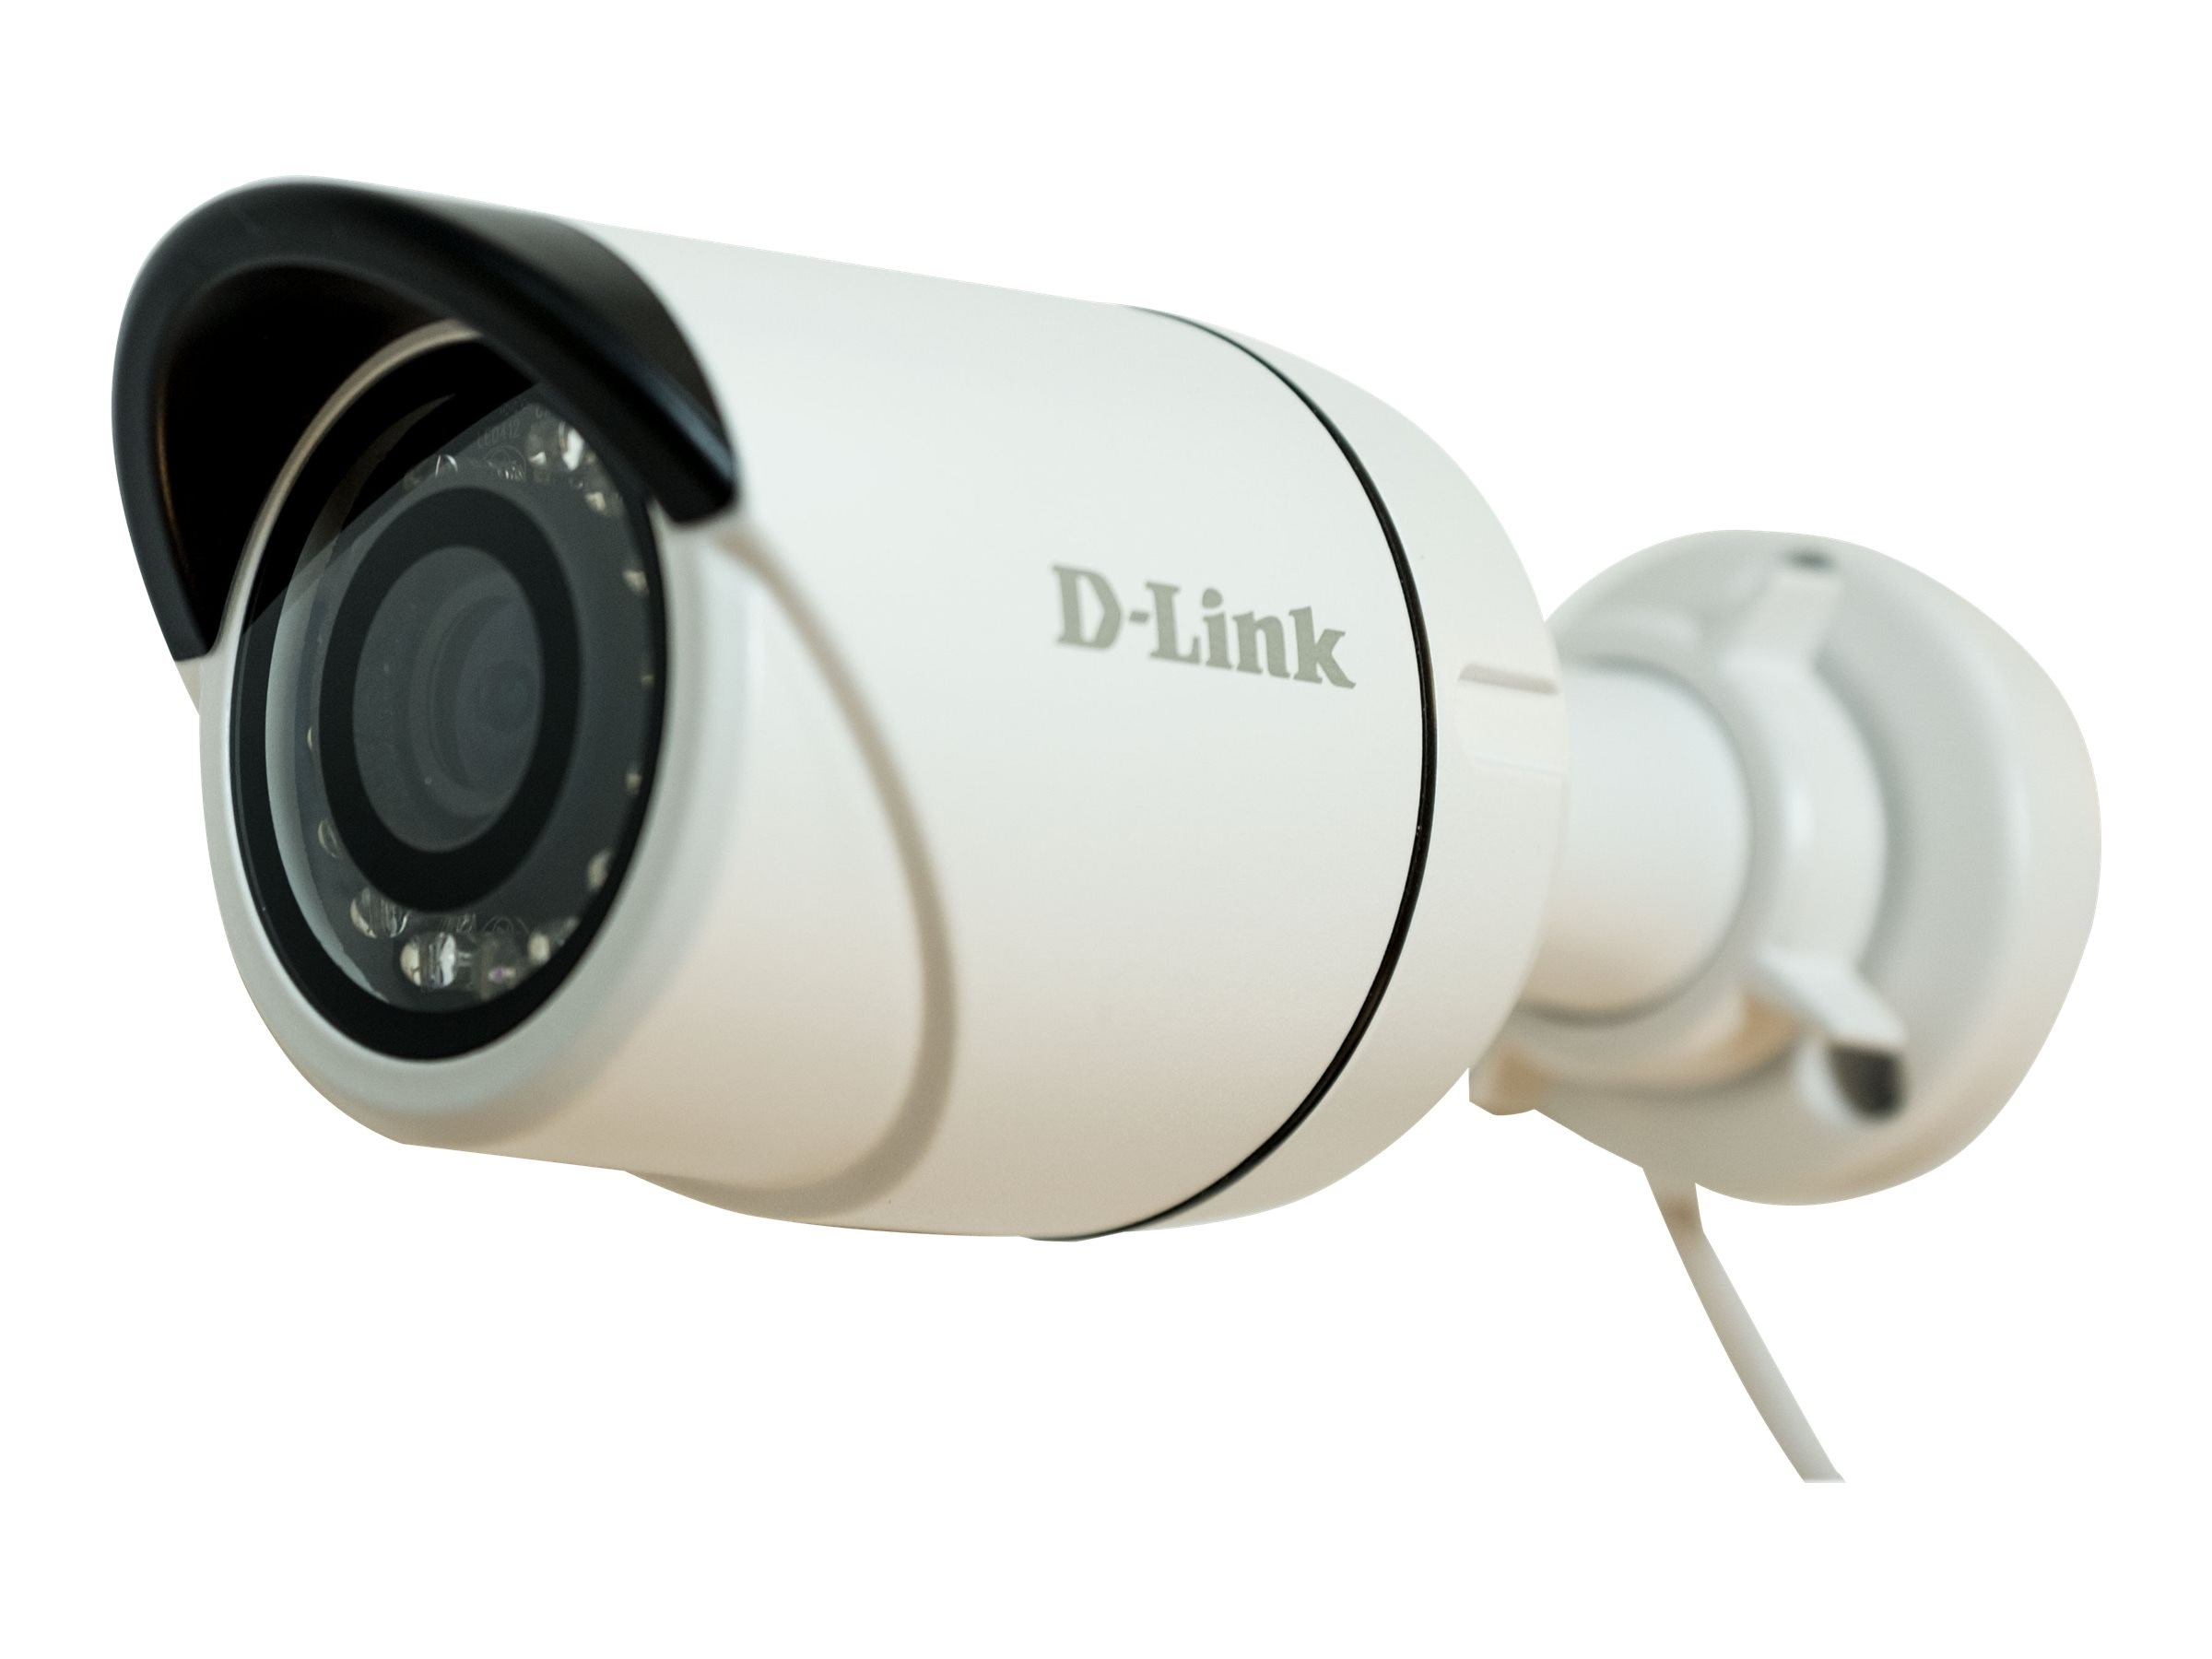 D-Link 3MP Vigilance Full HD Outdoor PoE Mini Bullet Camera, White